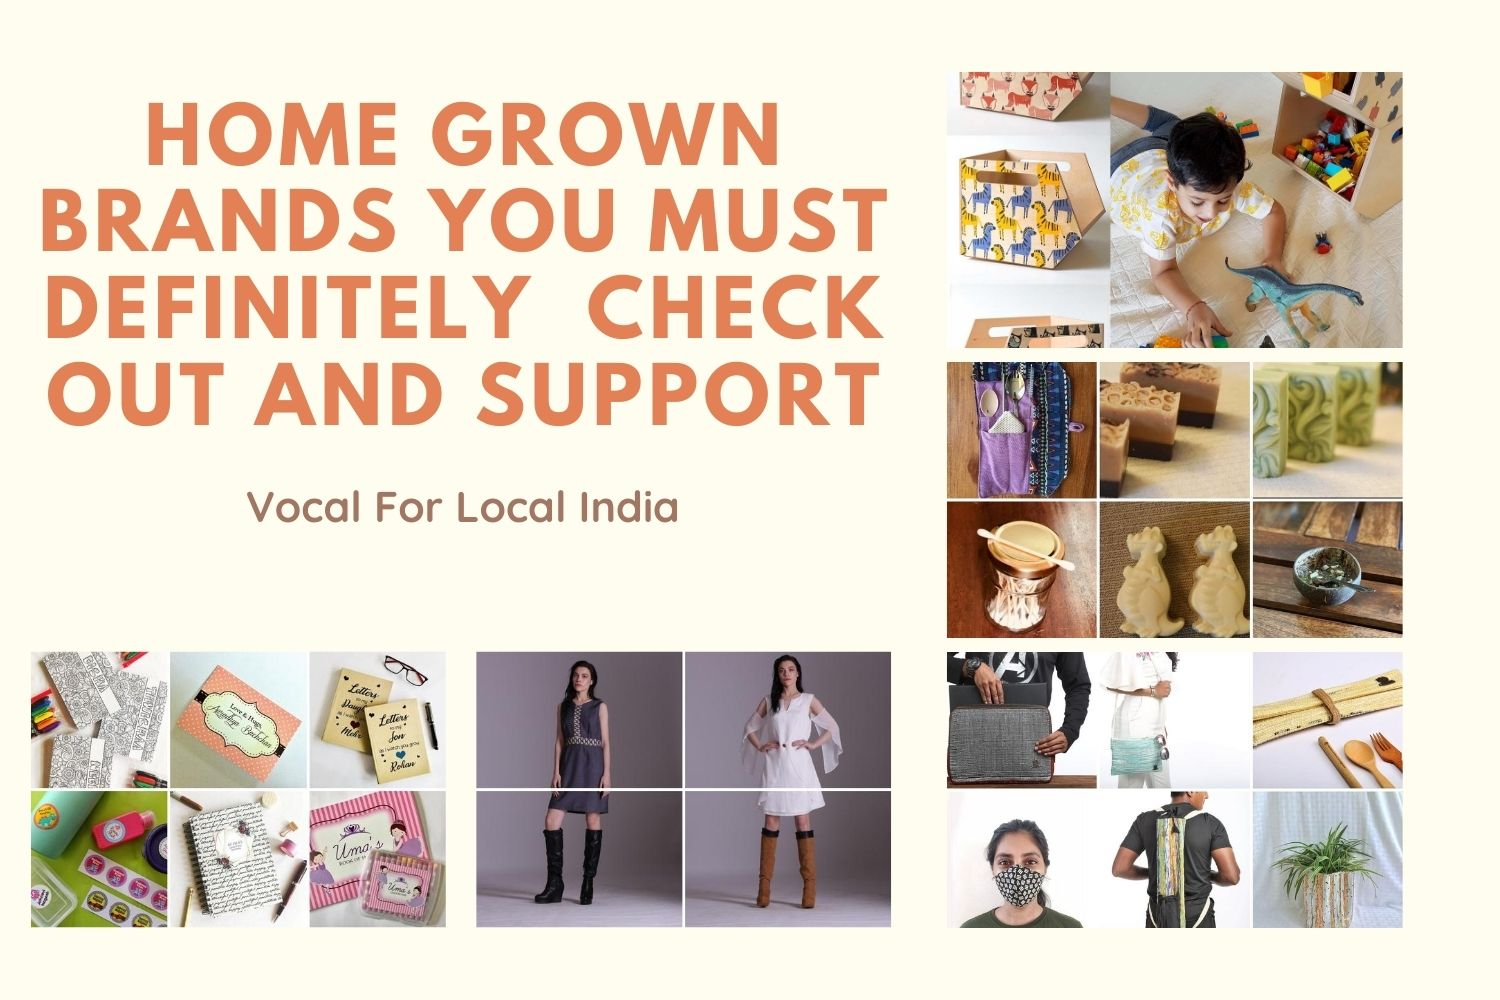 Vocal For Local India